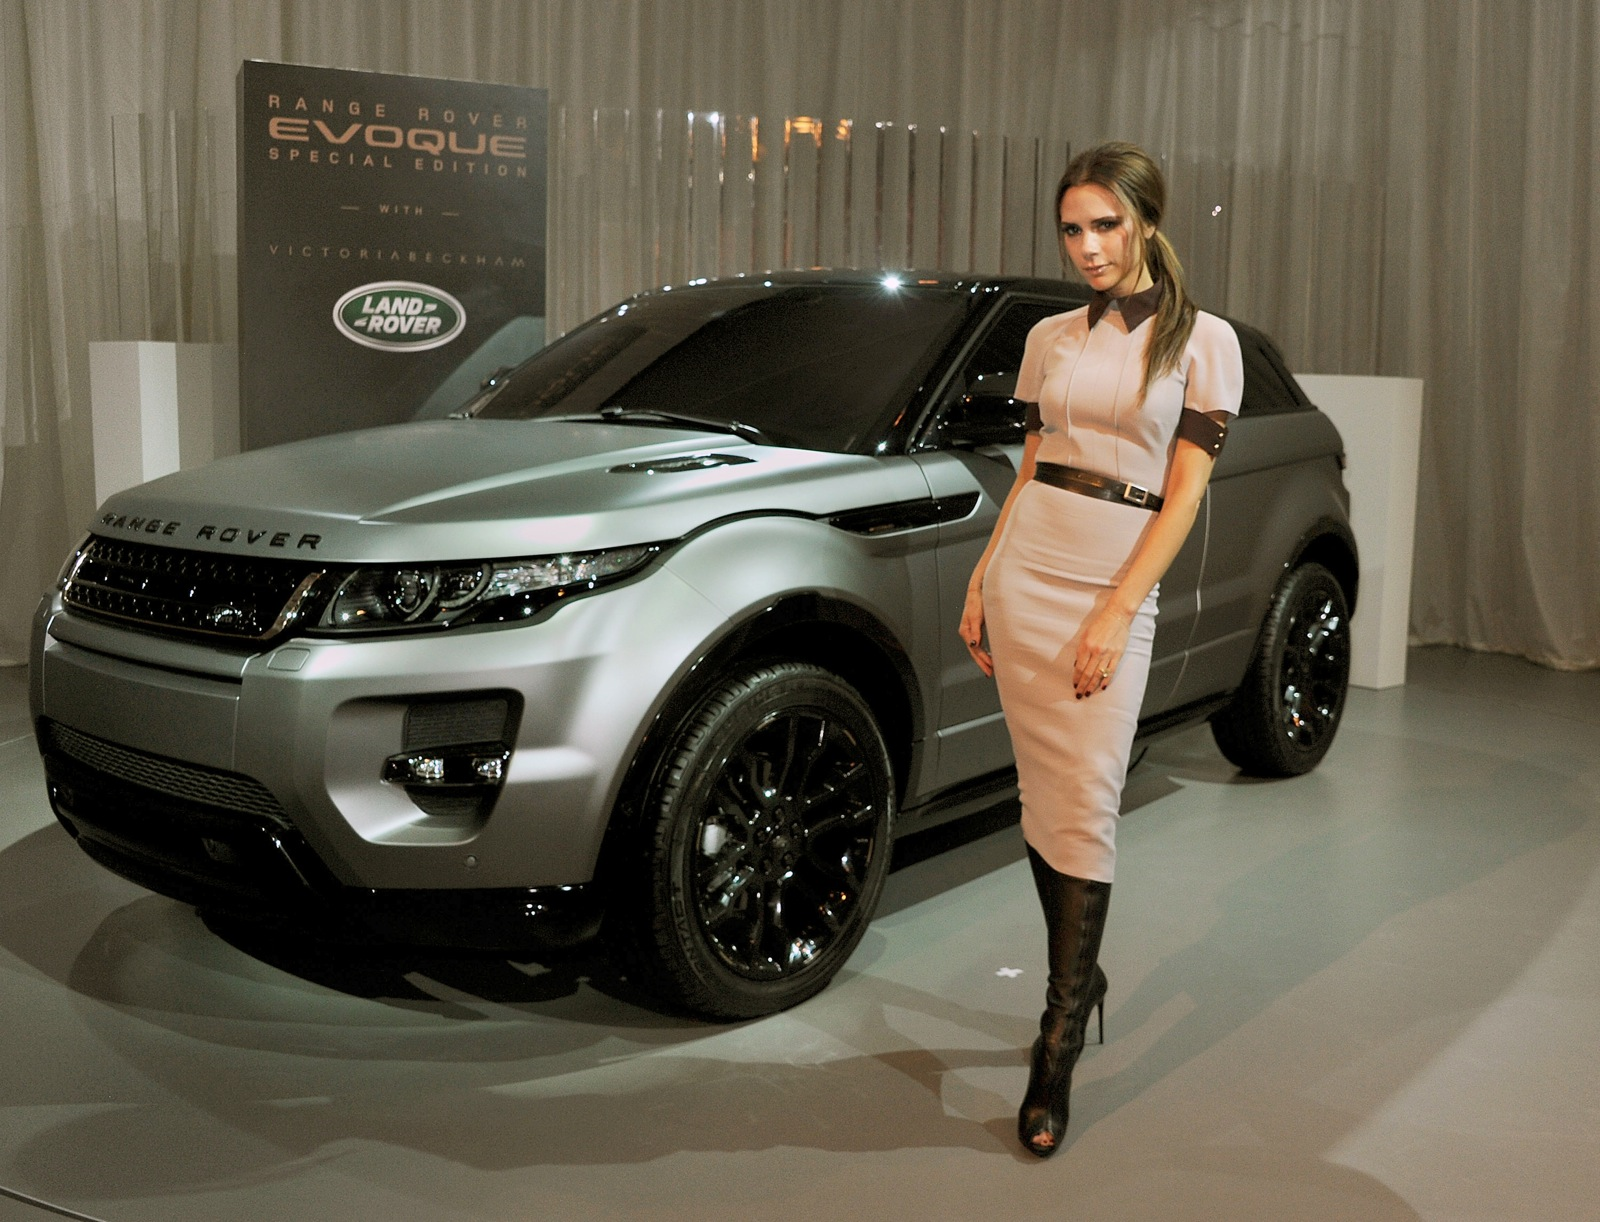 Land Rover Announces Range Rover Evoque Special Edition